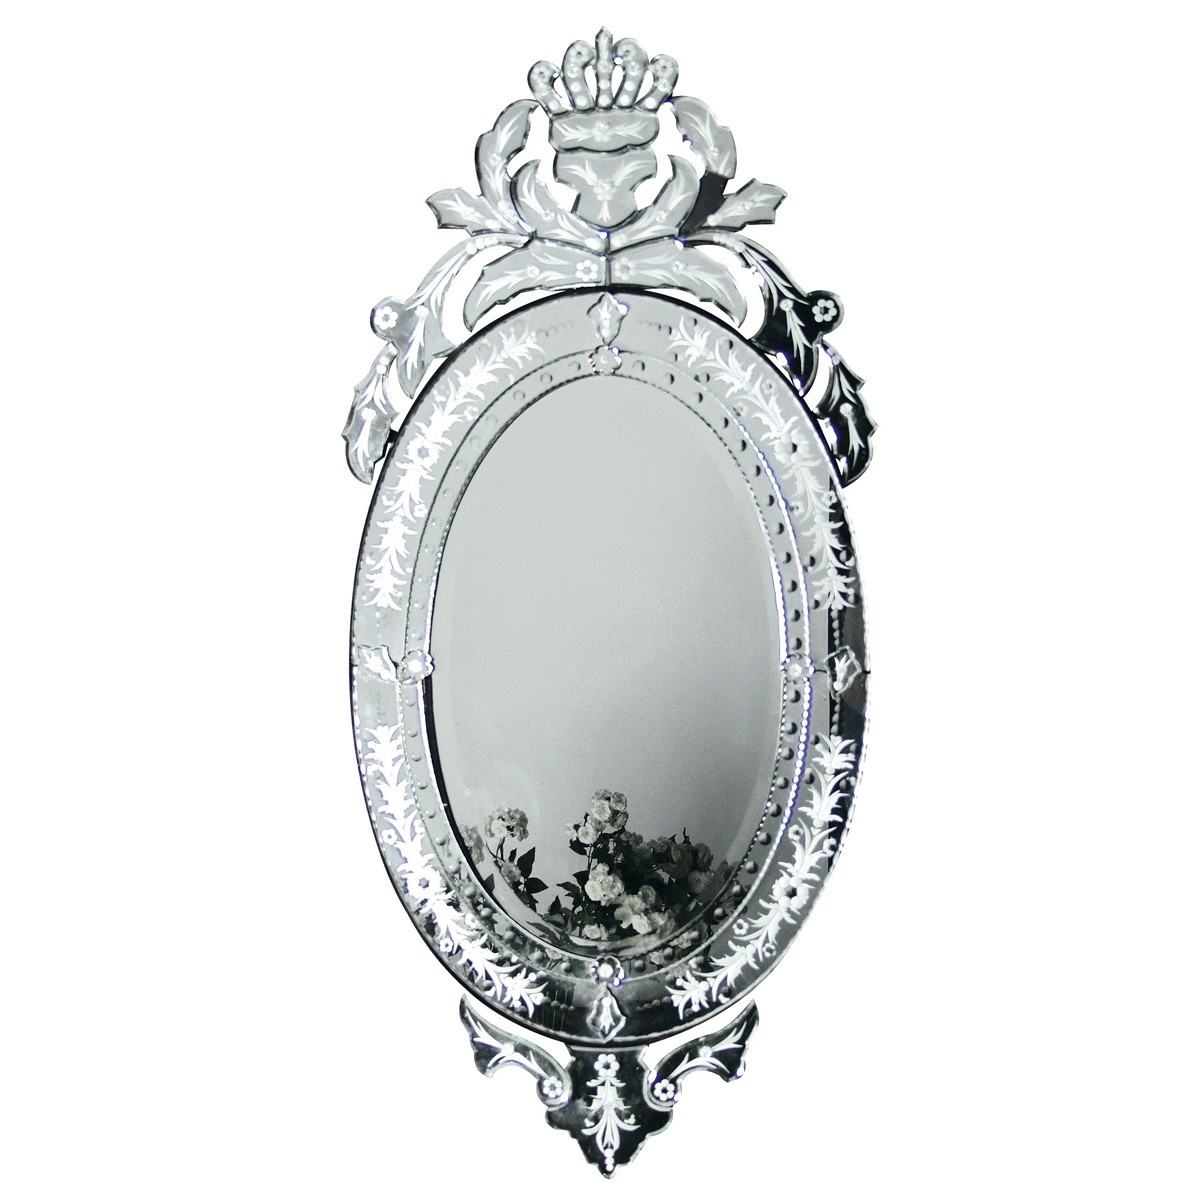 Venetian Iris Mirror (Image 1) by The French Bedroom Company